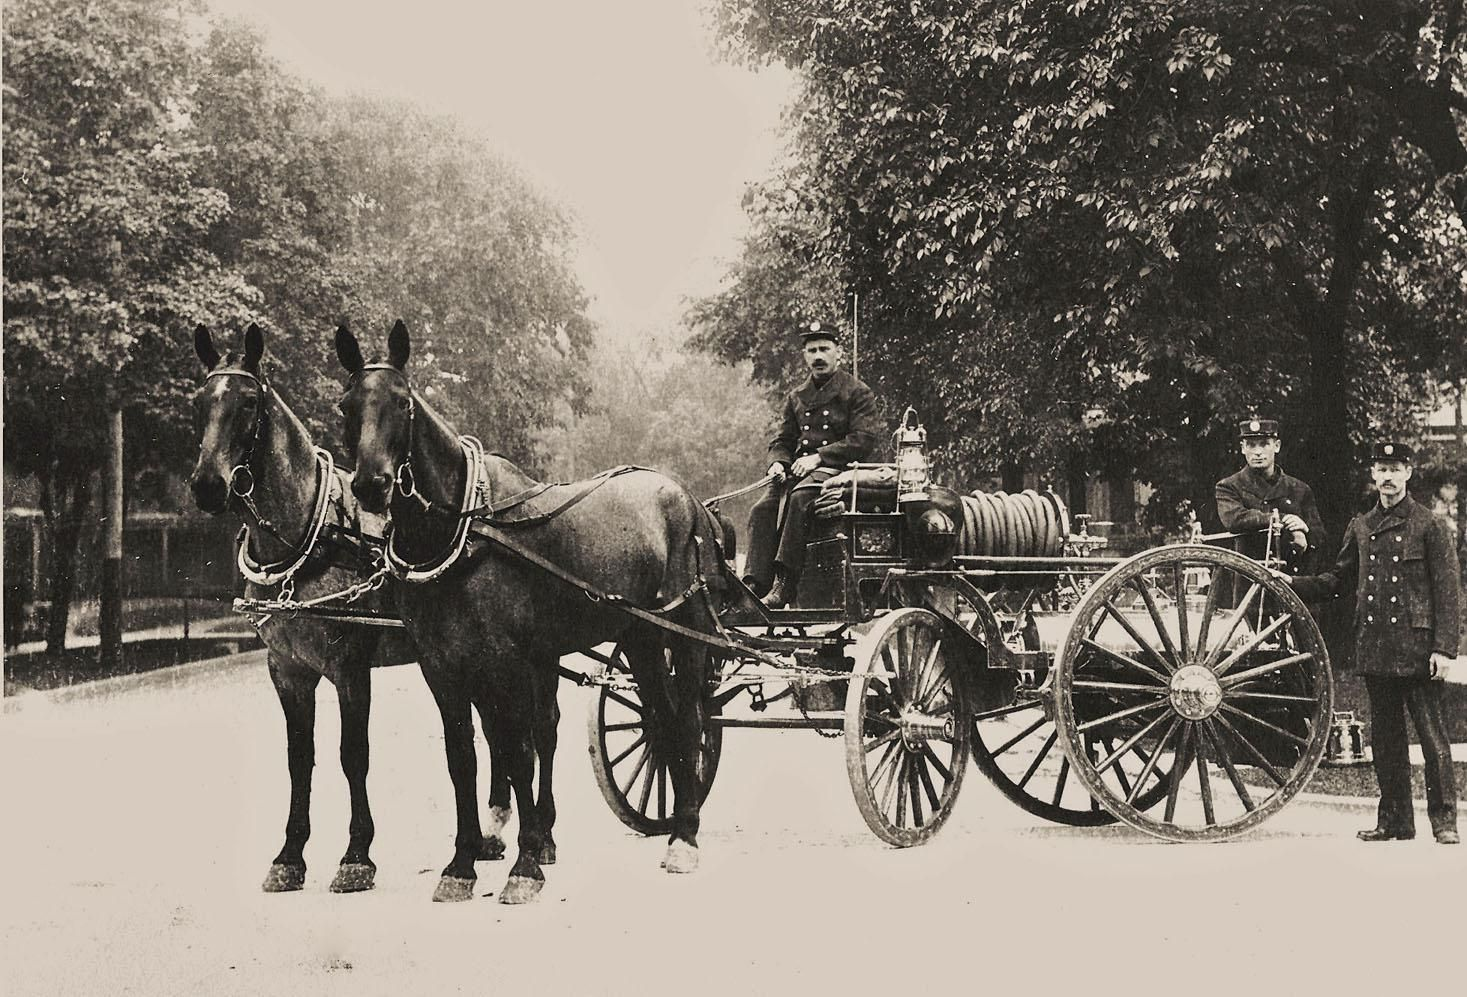 historical horse photo - Google Search